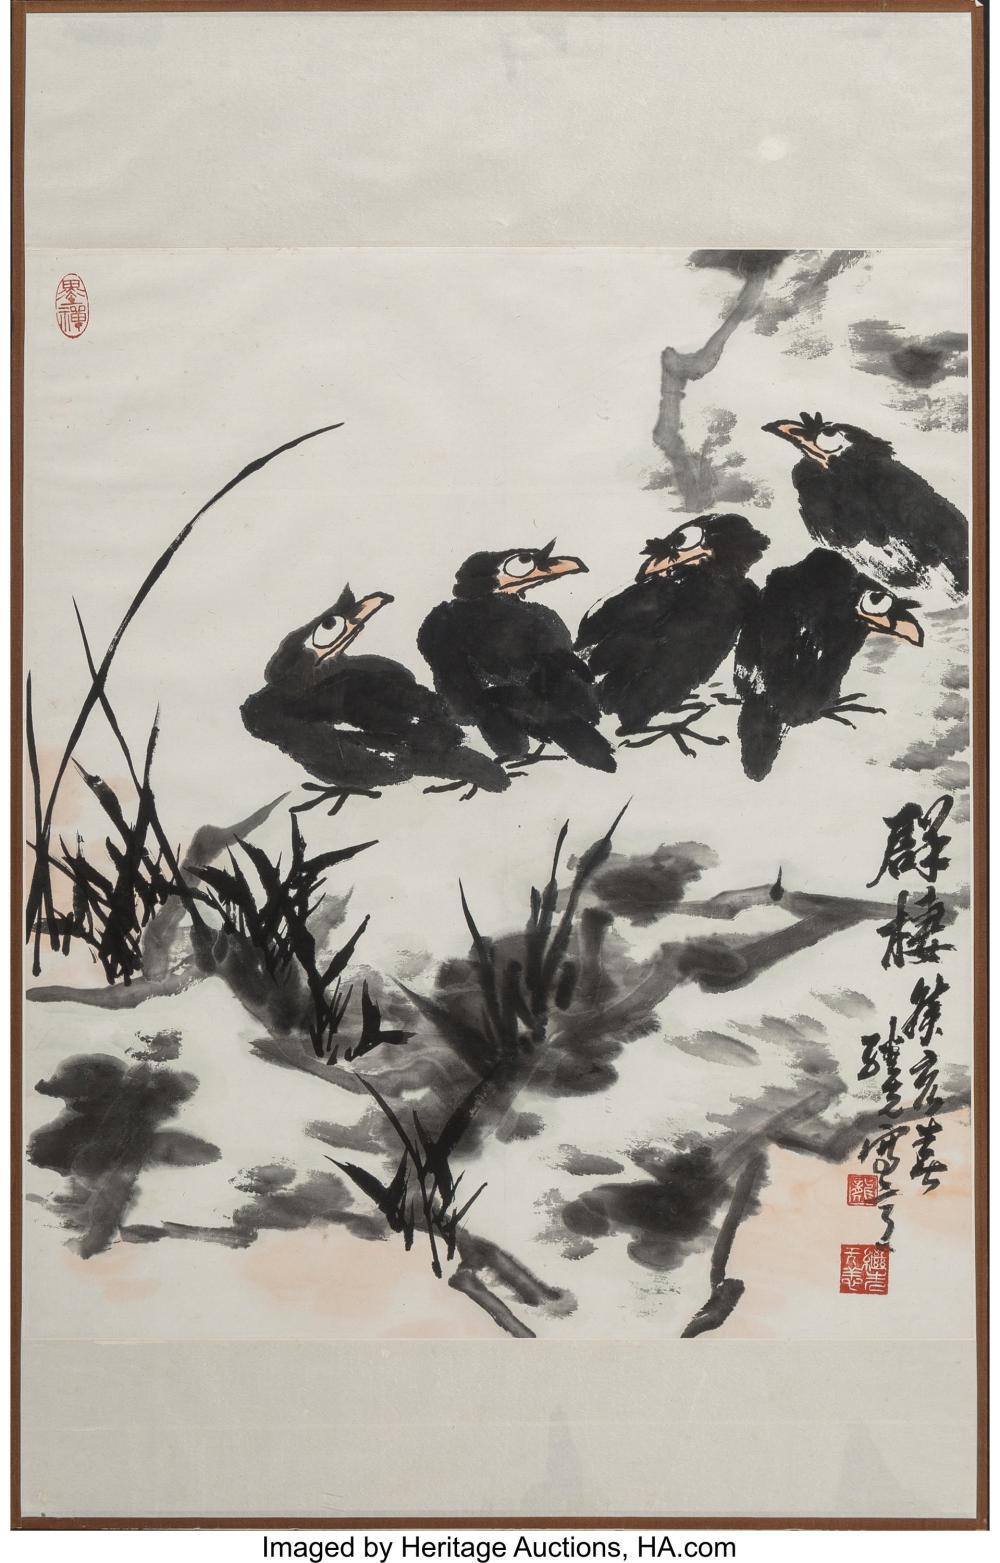 Lot 21280: Two Lv Lin, Long Jixian, and Wu Mingyao Chinese Watercolor Paintings Marks: Red